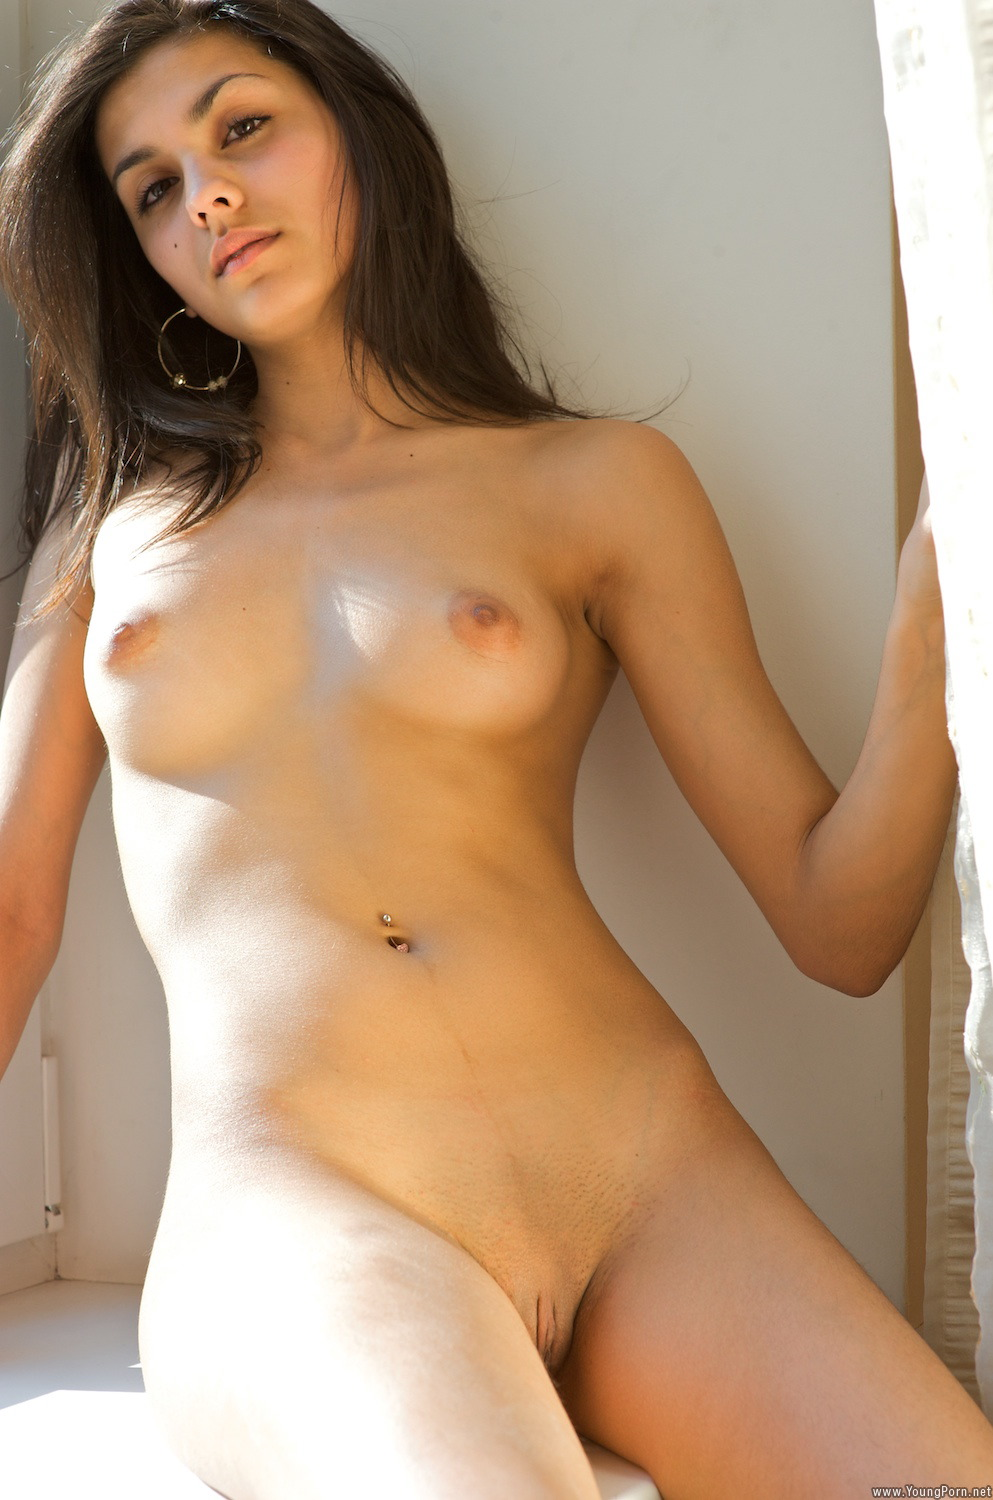 Xxx hot nude babes join. agree